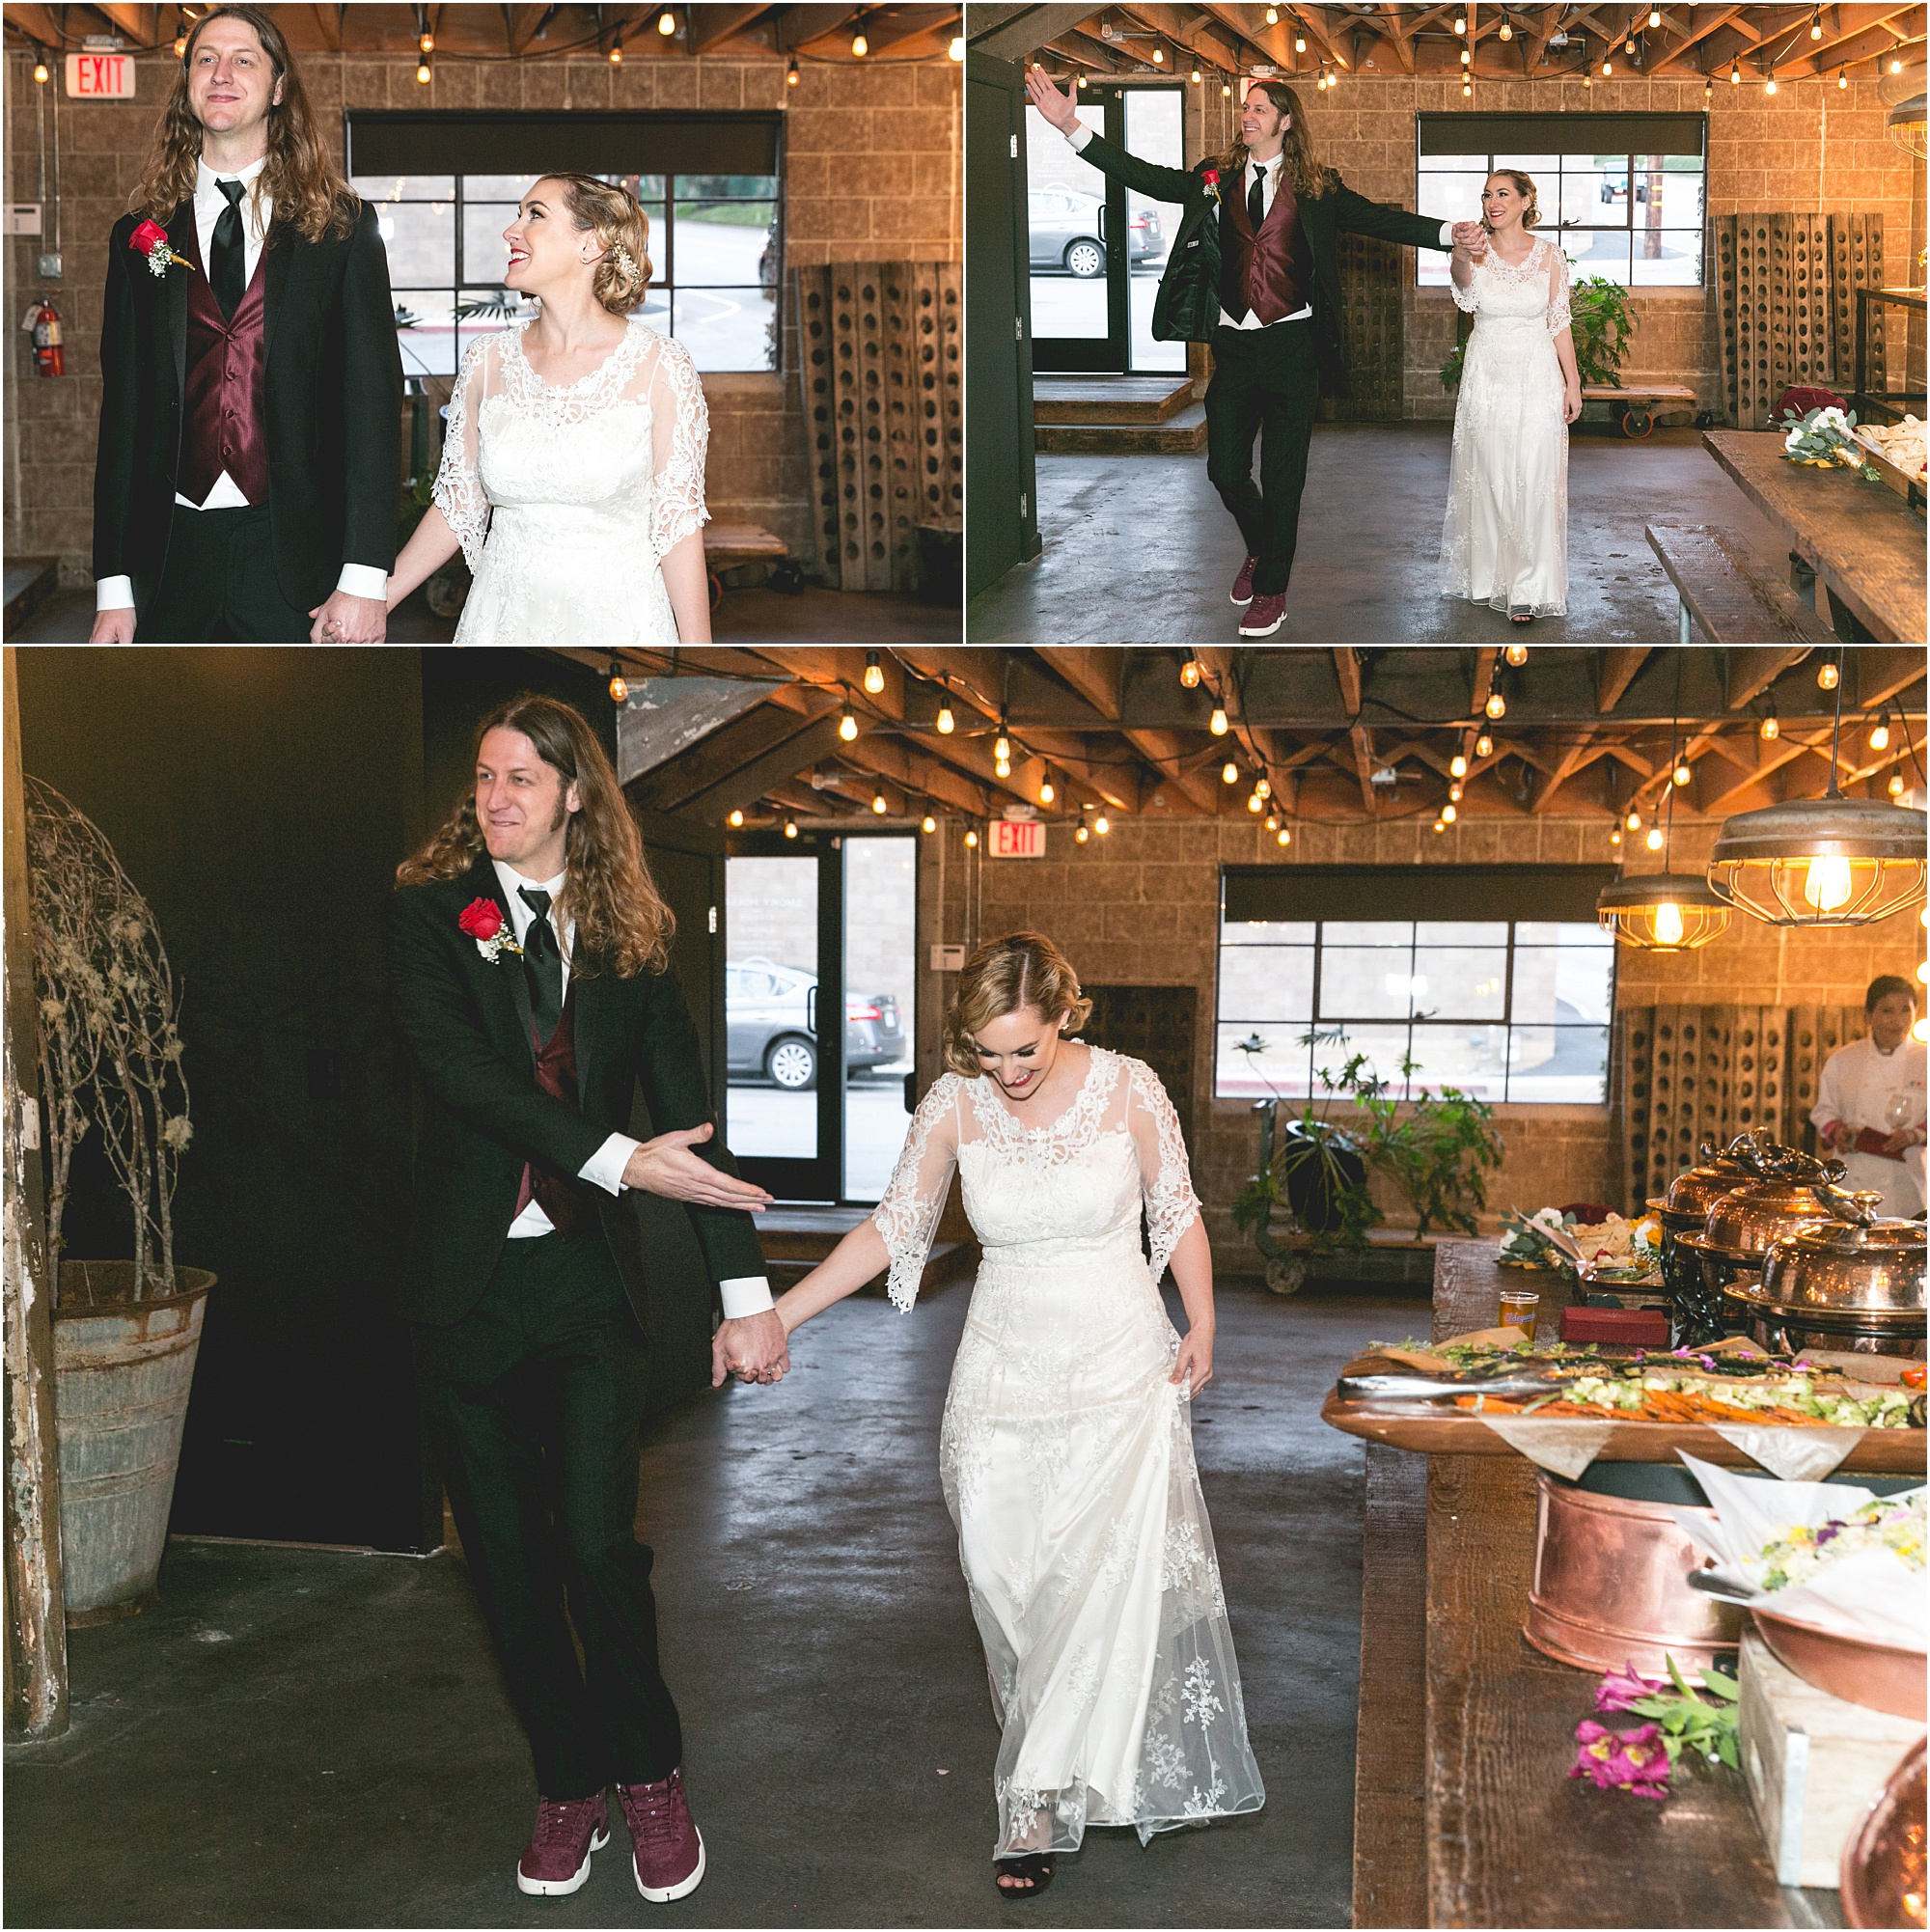 Boomer Wedding Stomps 46.jpg